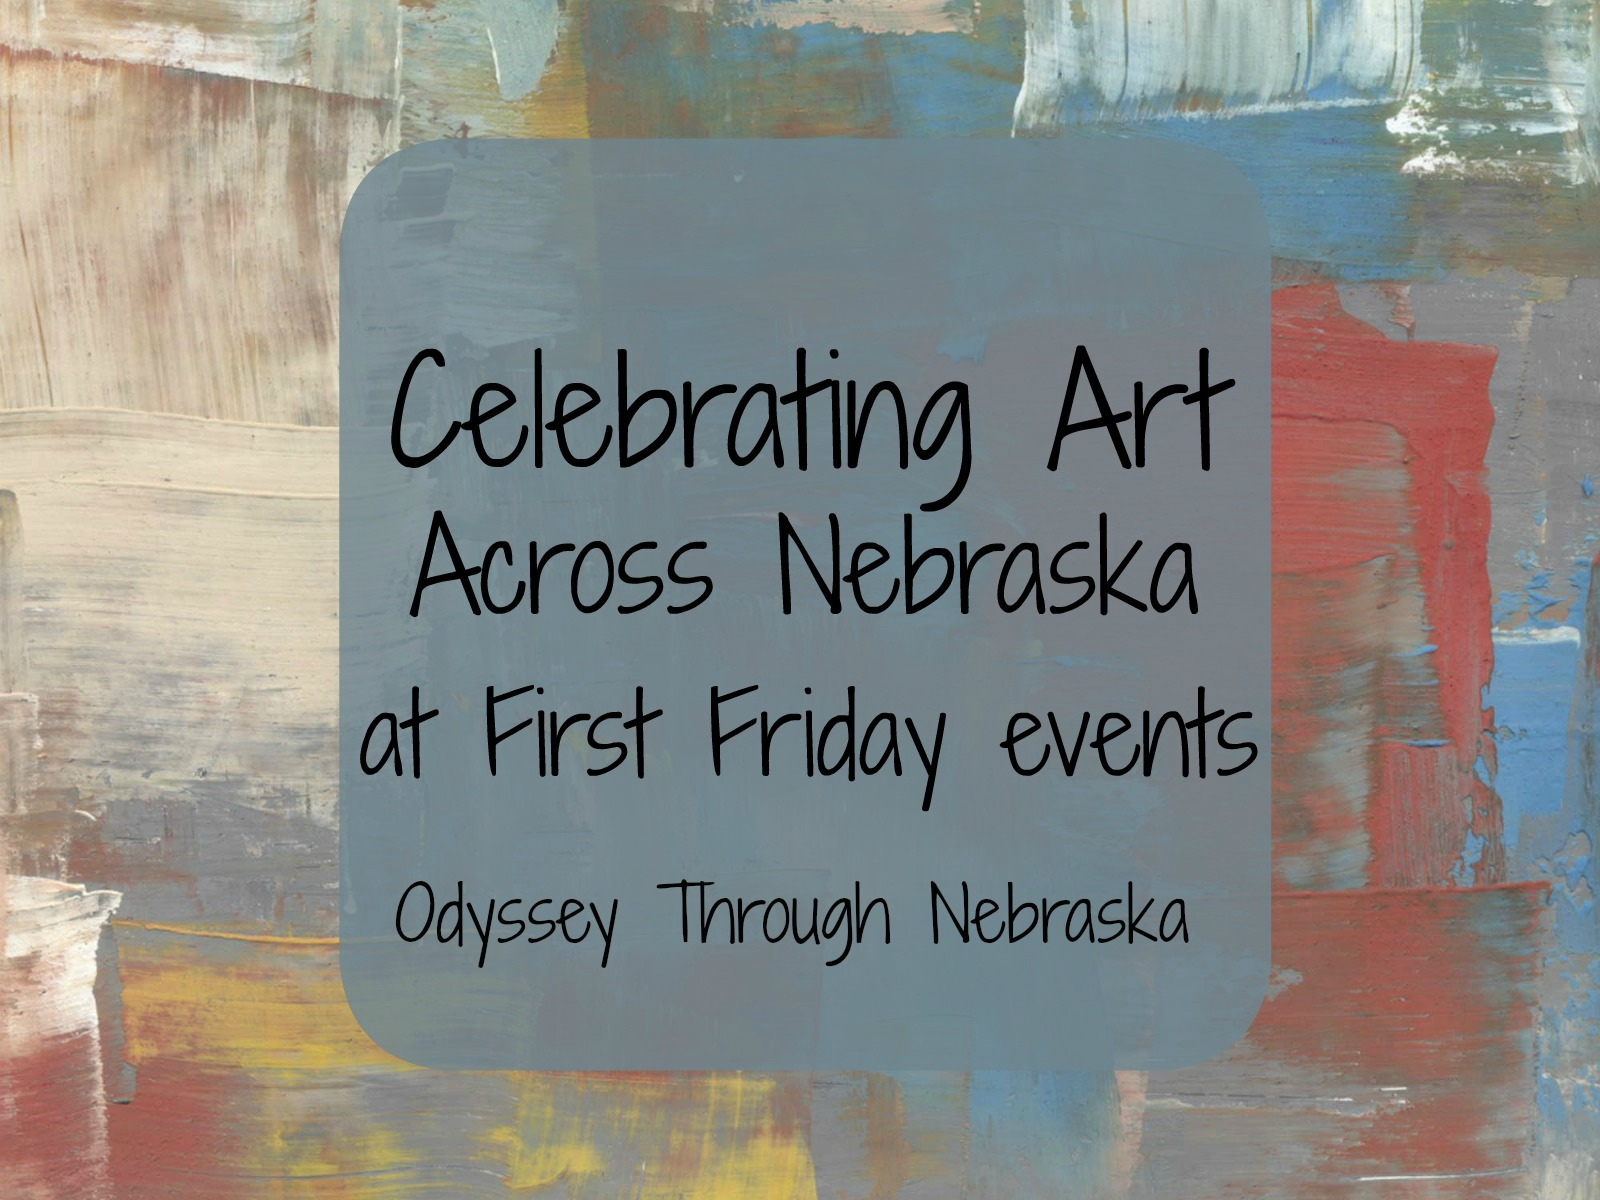 First Friday Art Events across Nebraska